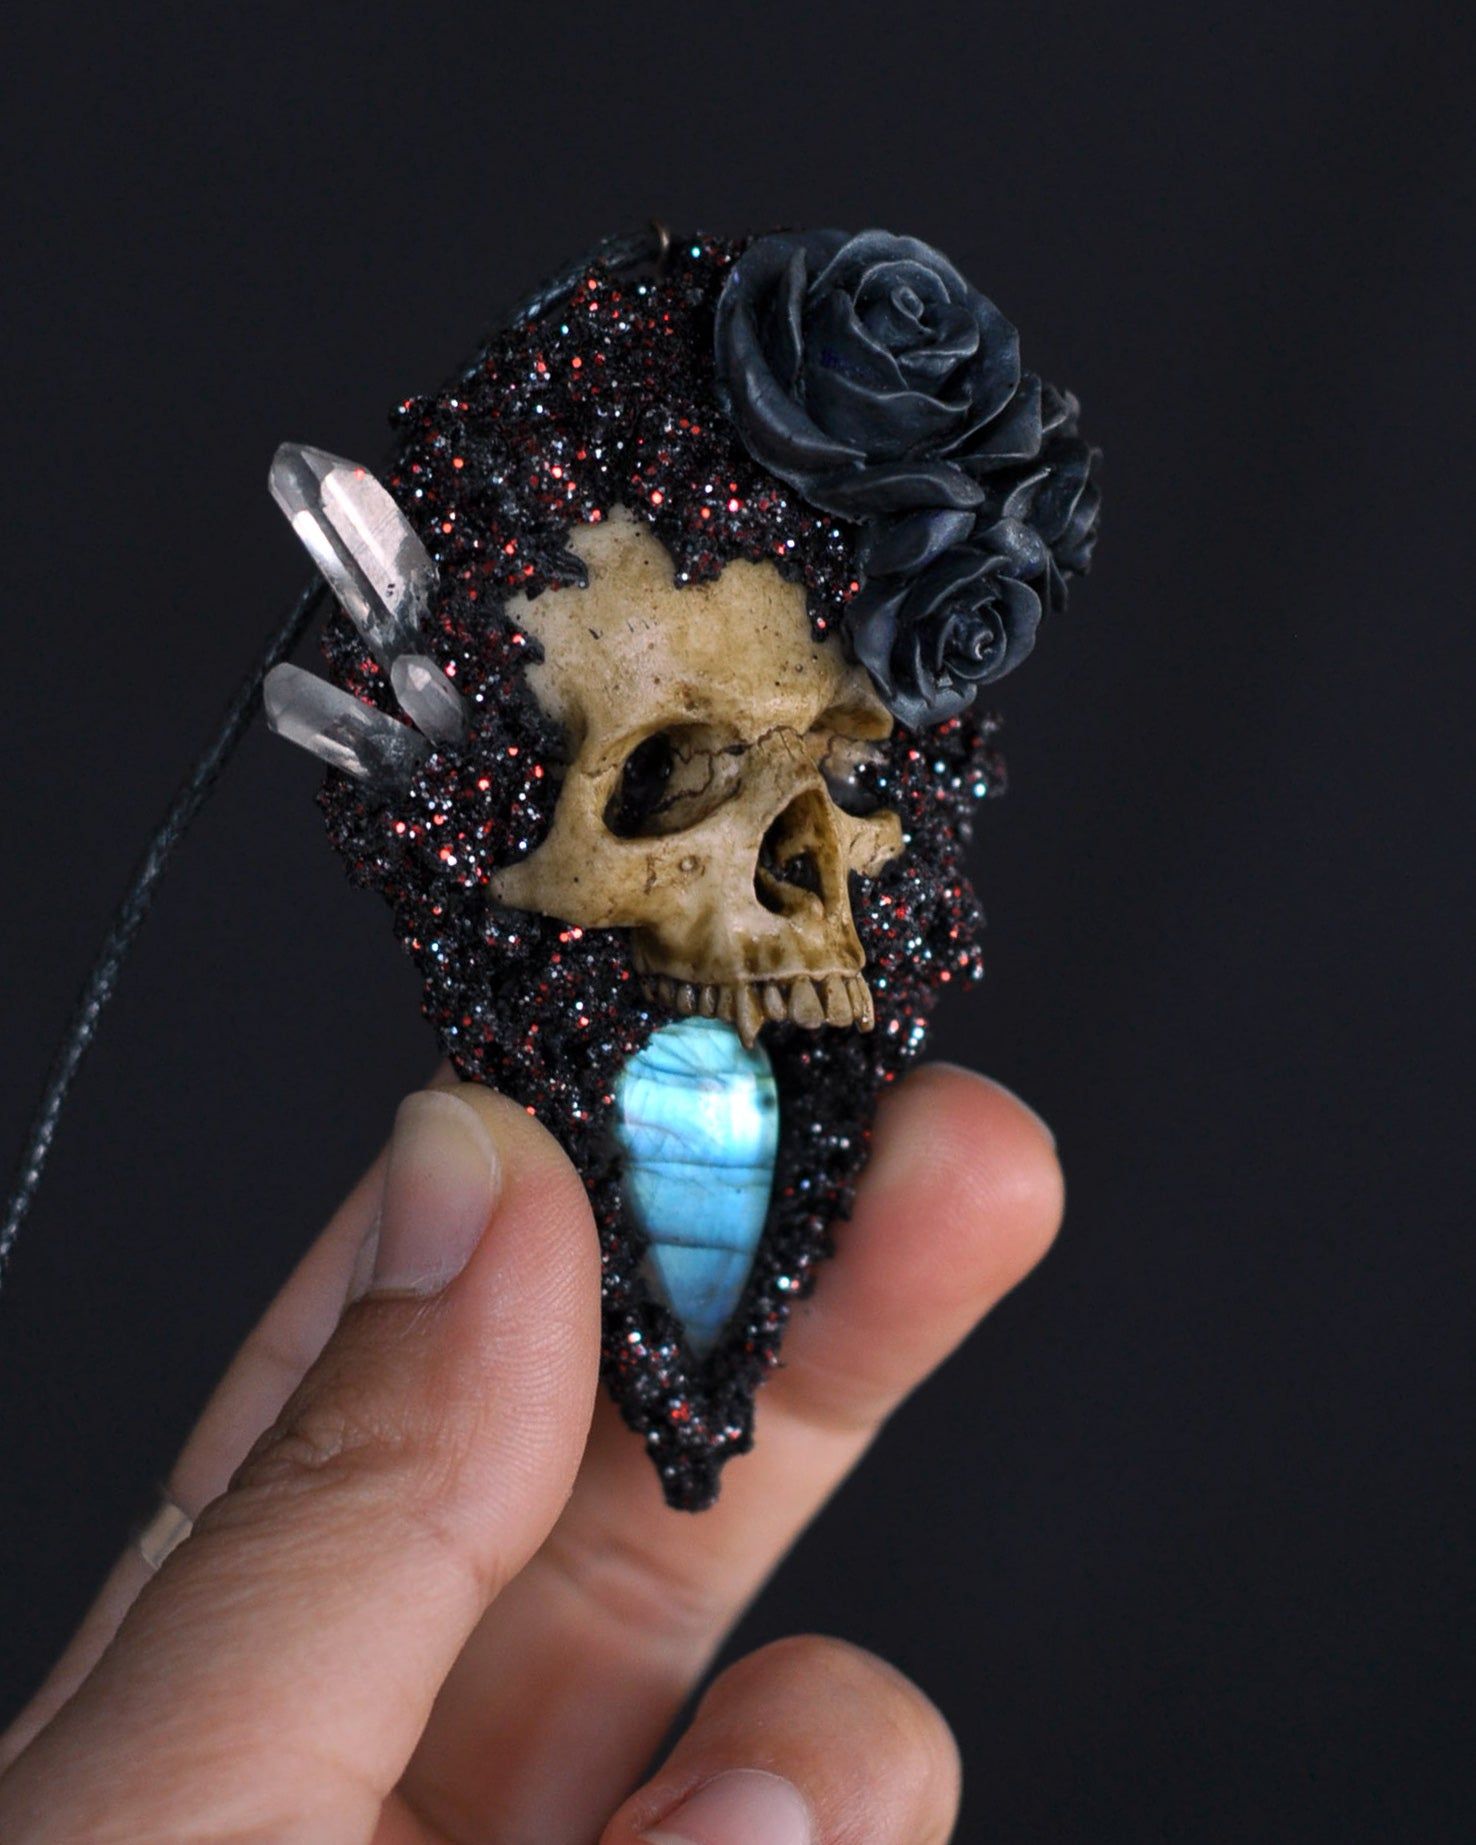 High Detailed Realistic Replica Vampire Human Skull Necklace, Blue Labradorite Gemstone Necklace, Gothic Style Jewelry, Gothic Accessories